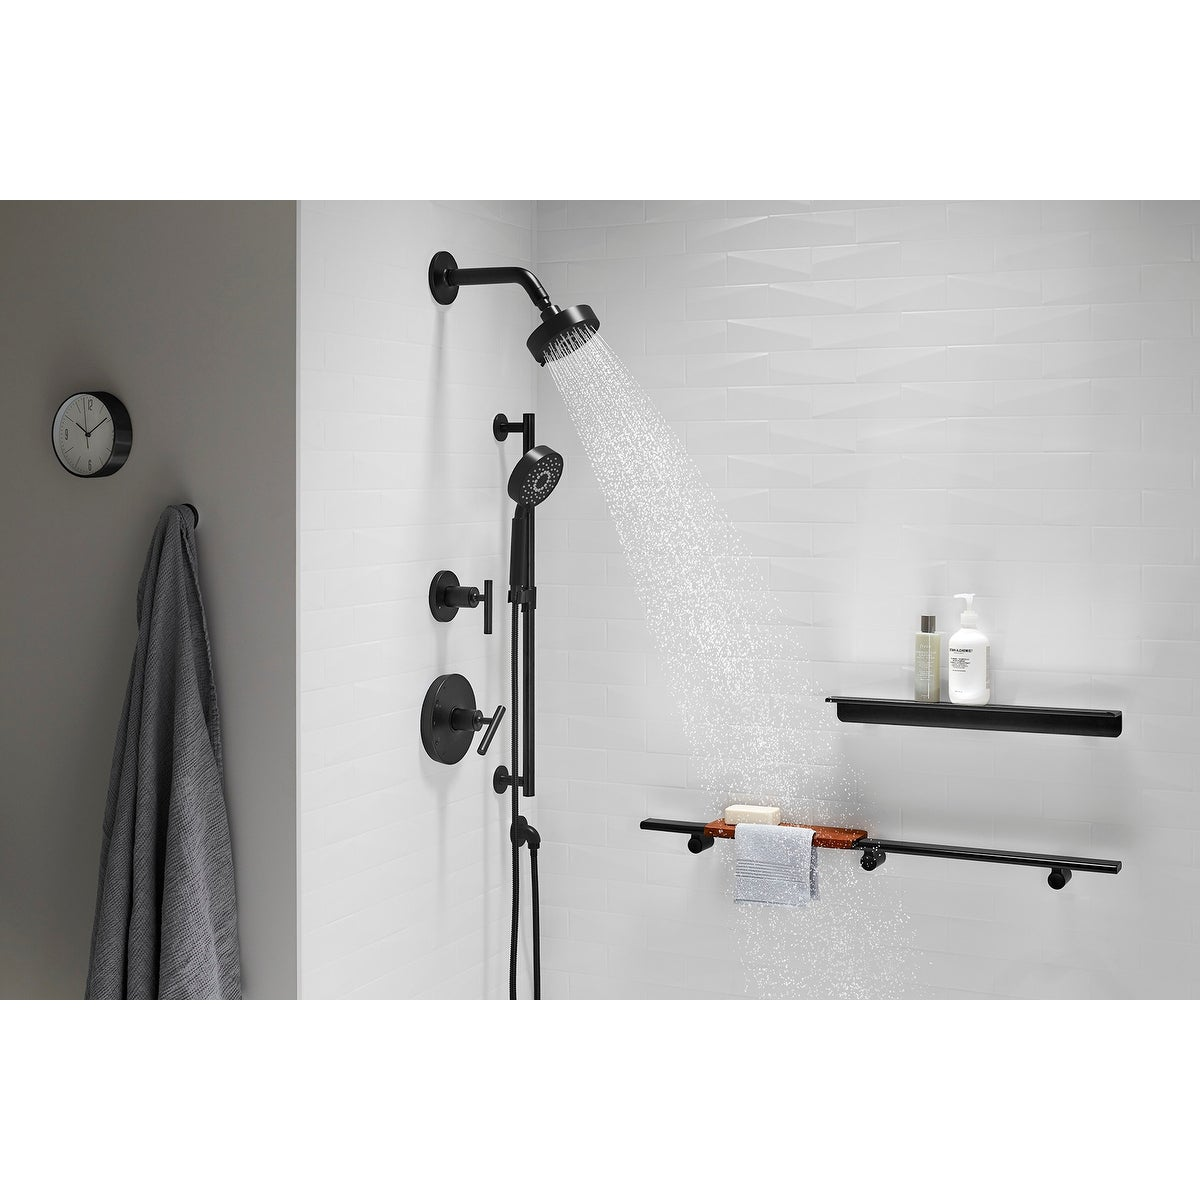 Kohler K 22166 Purist 2 5 Gpm Multi Function Hand Shower